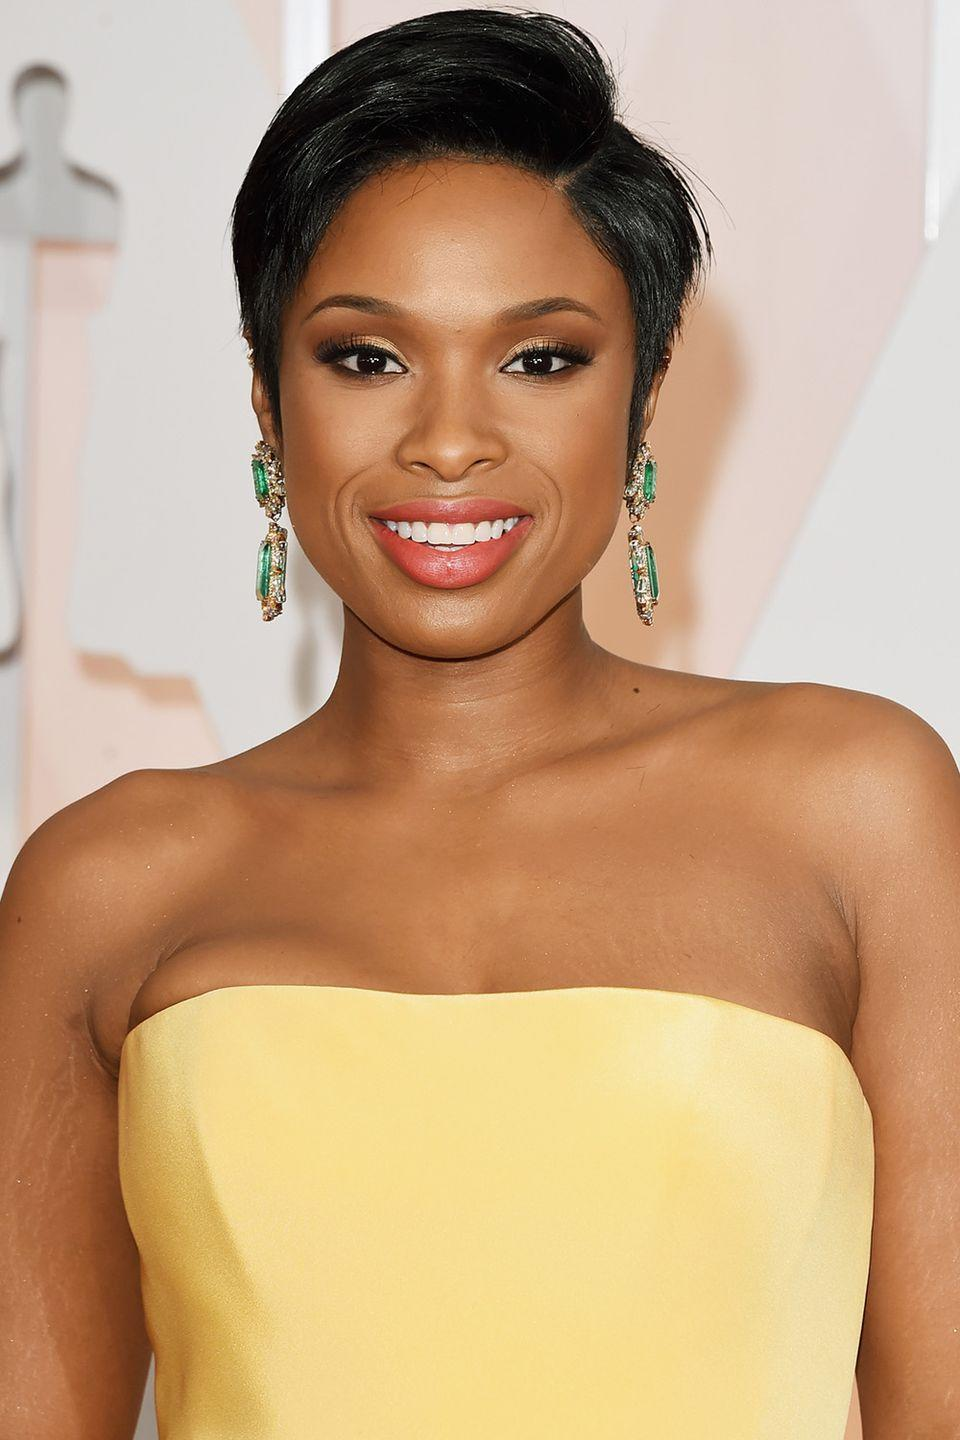 """<p>Despite many that indulge in the Hollywood party scene, Jennifer Hudson can confidently says: 'I've never had a drink in my life.' In an interview , the singer and actress told Chelsea Handler: 'I've never been interested. Nobody ever believes it.'</p><p>H/T: <a href=""""http://www.huffingtonpost.com/2013/10/11/jennifer-hudson-sober_n_4086340.html"""" rel=""""nofollow noopener"""" target=""""_blank"""" data-ylk=""""slk:Huffington Post"""" class=""""link rapid-noclick-resp"""">Huffington Post</a></p>"""